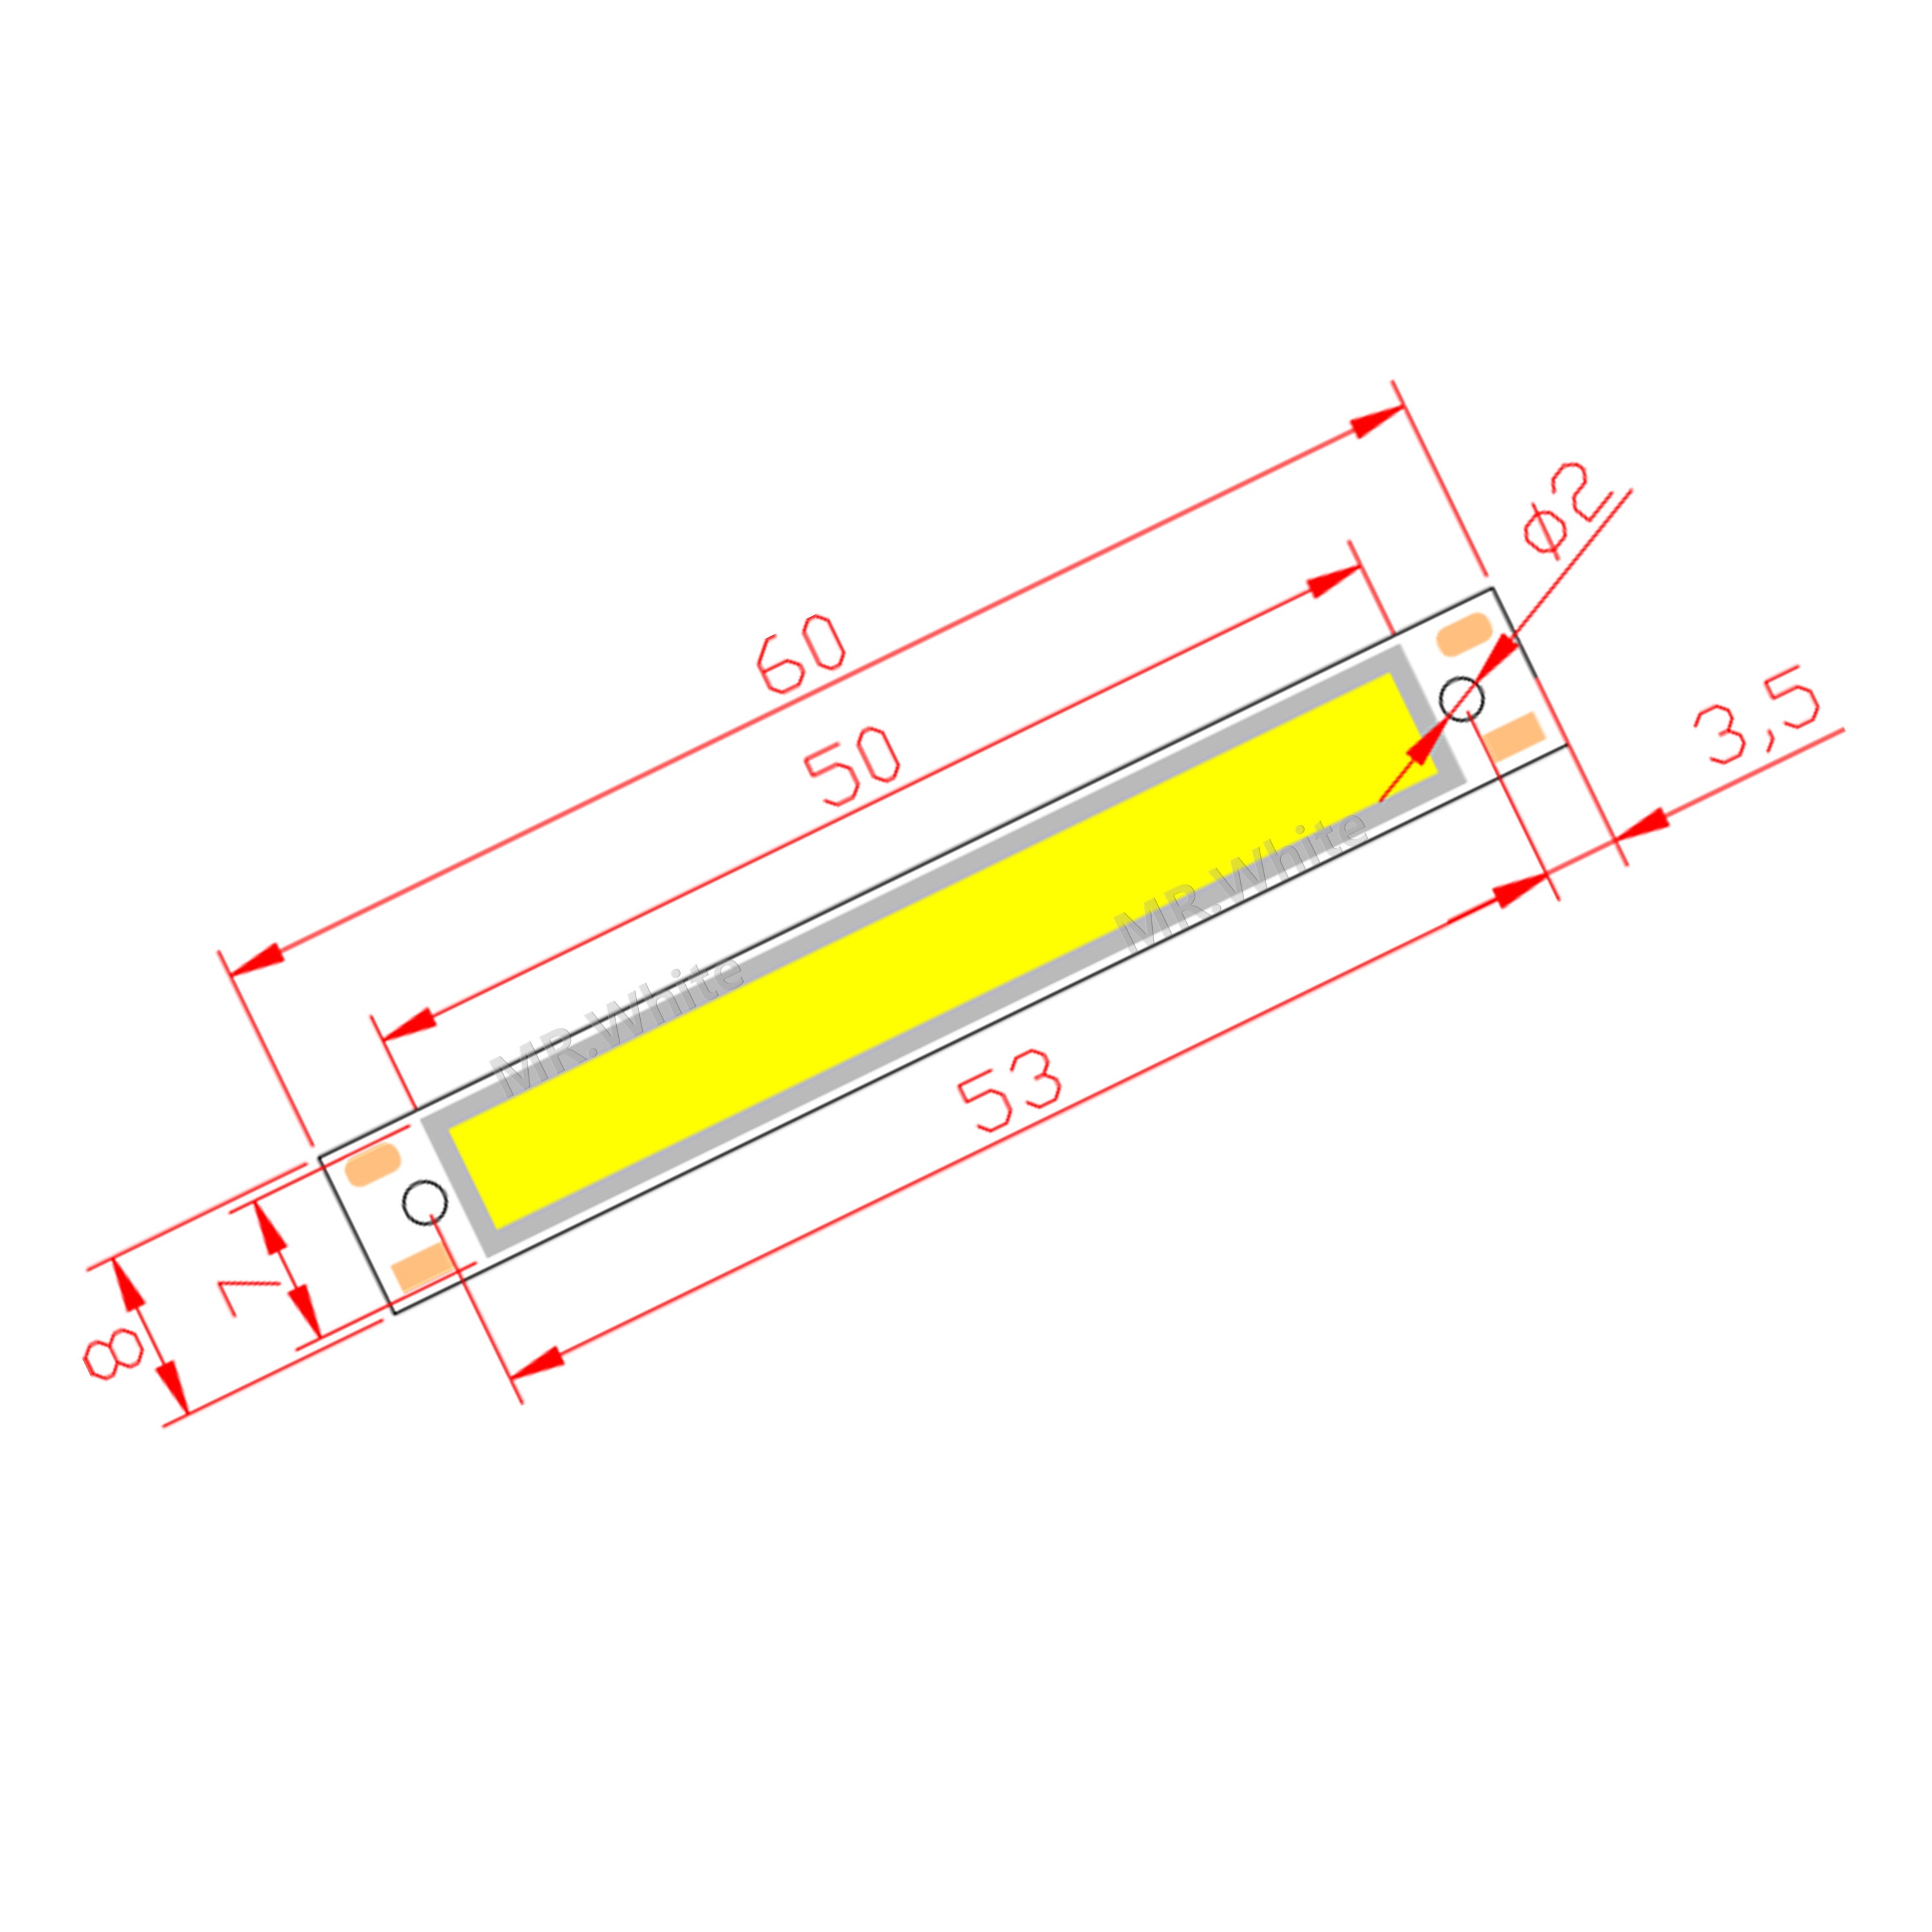 10pcs 3V 3.7V DC 60mm 8mm LED COB Strip 1.5W 300mA 100LM Warm Cold White Blue Red COB LED Light Source Module For DIY Work Lamp